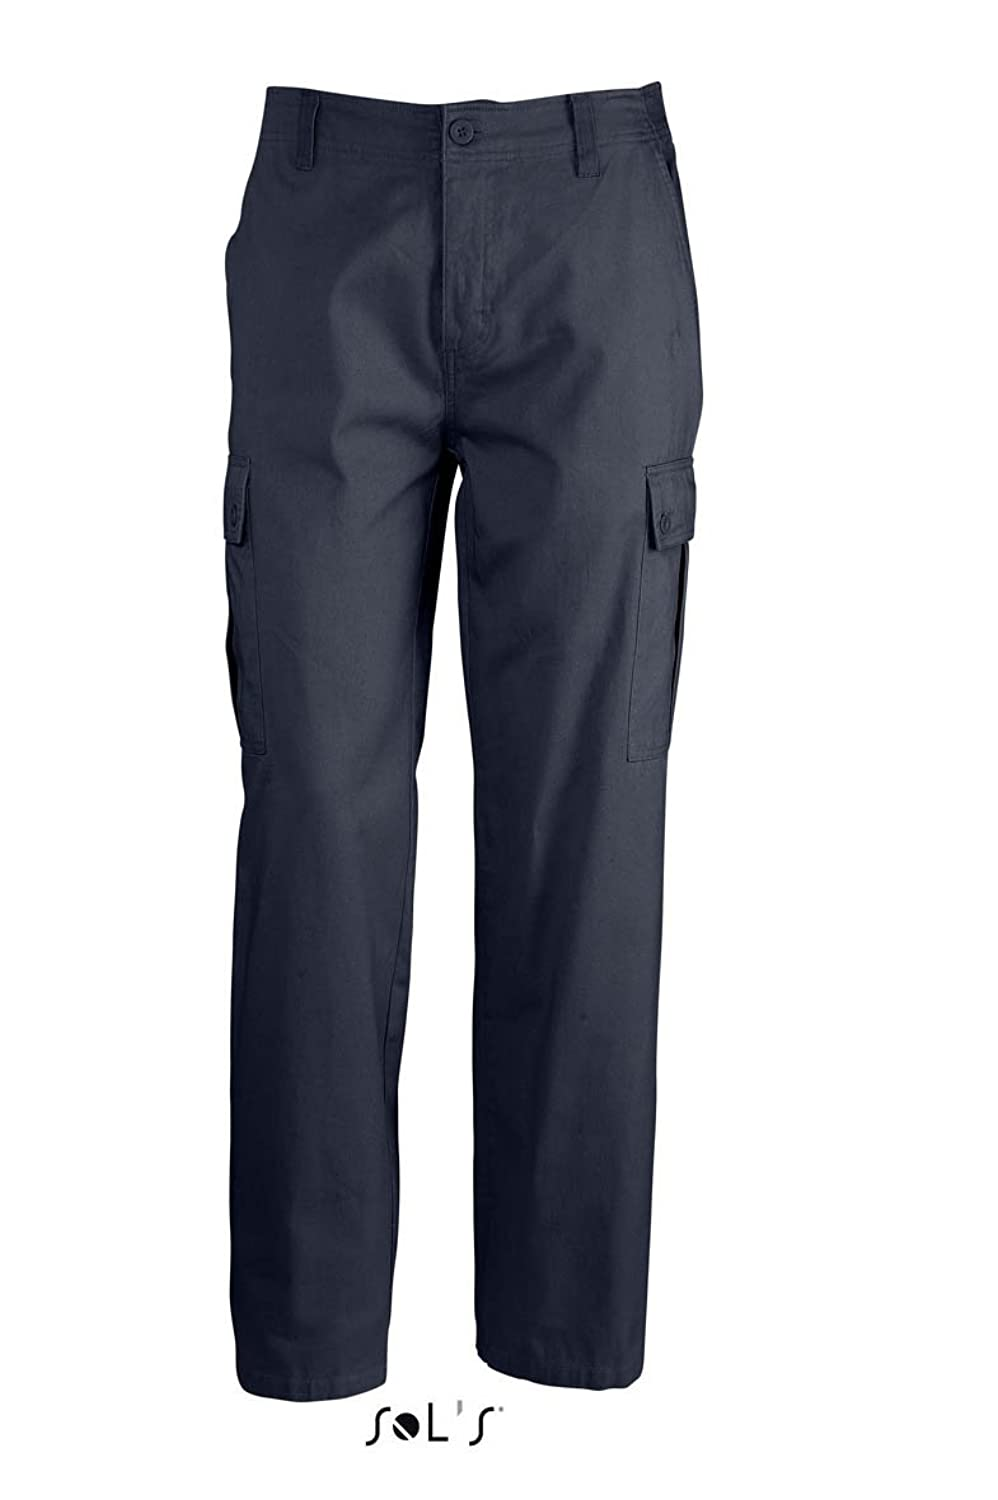 new MEN'S TROUSERS SOL'S JEEP 83020 PANTS Mens Modern Trouser Classic Size Line